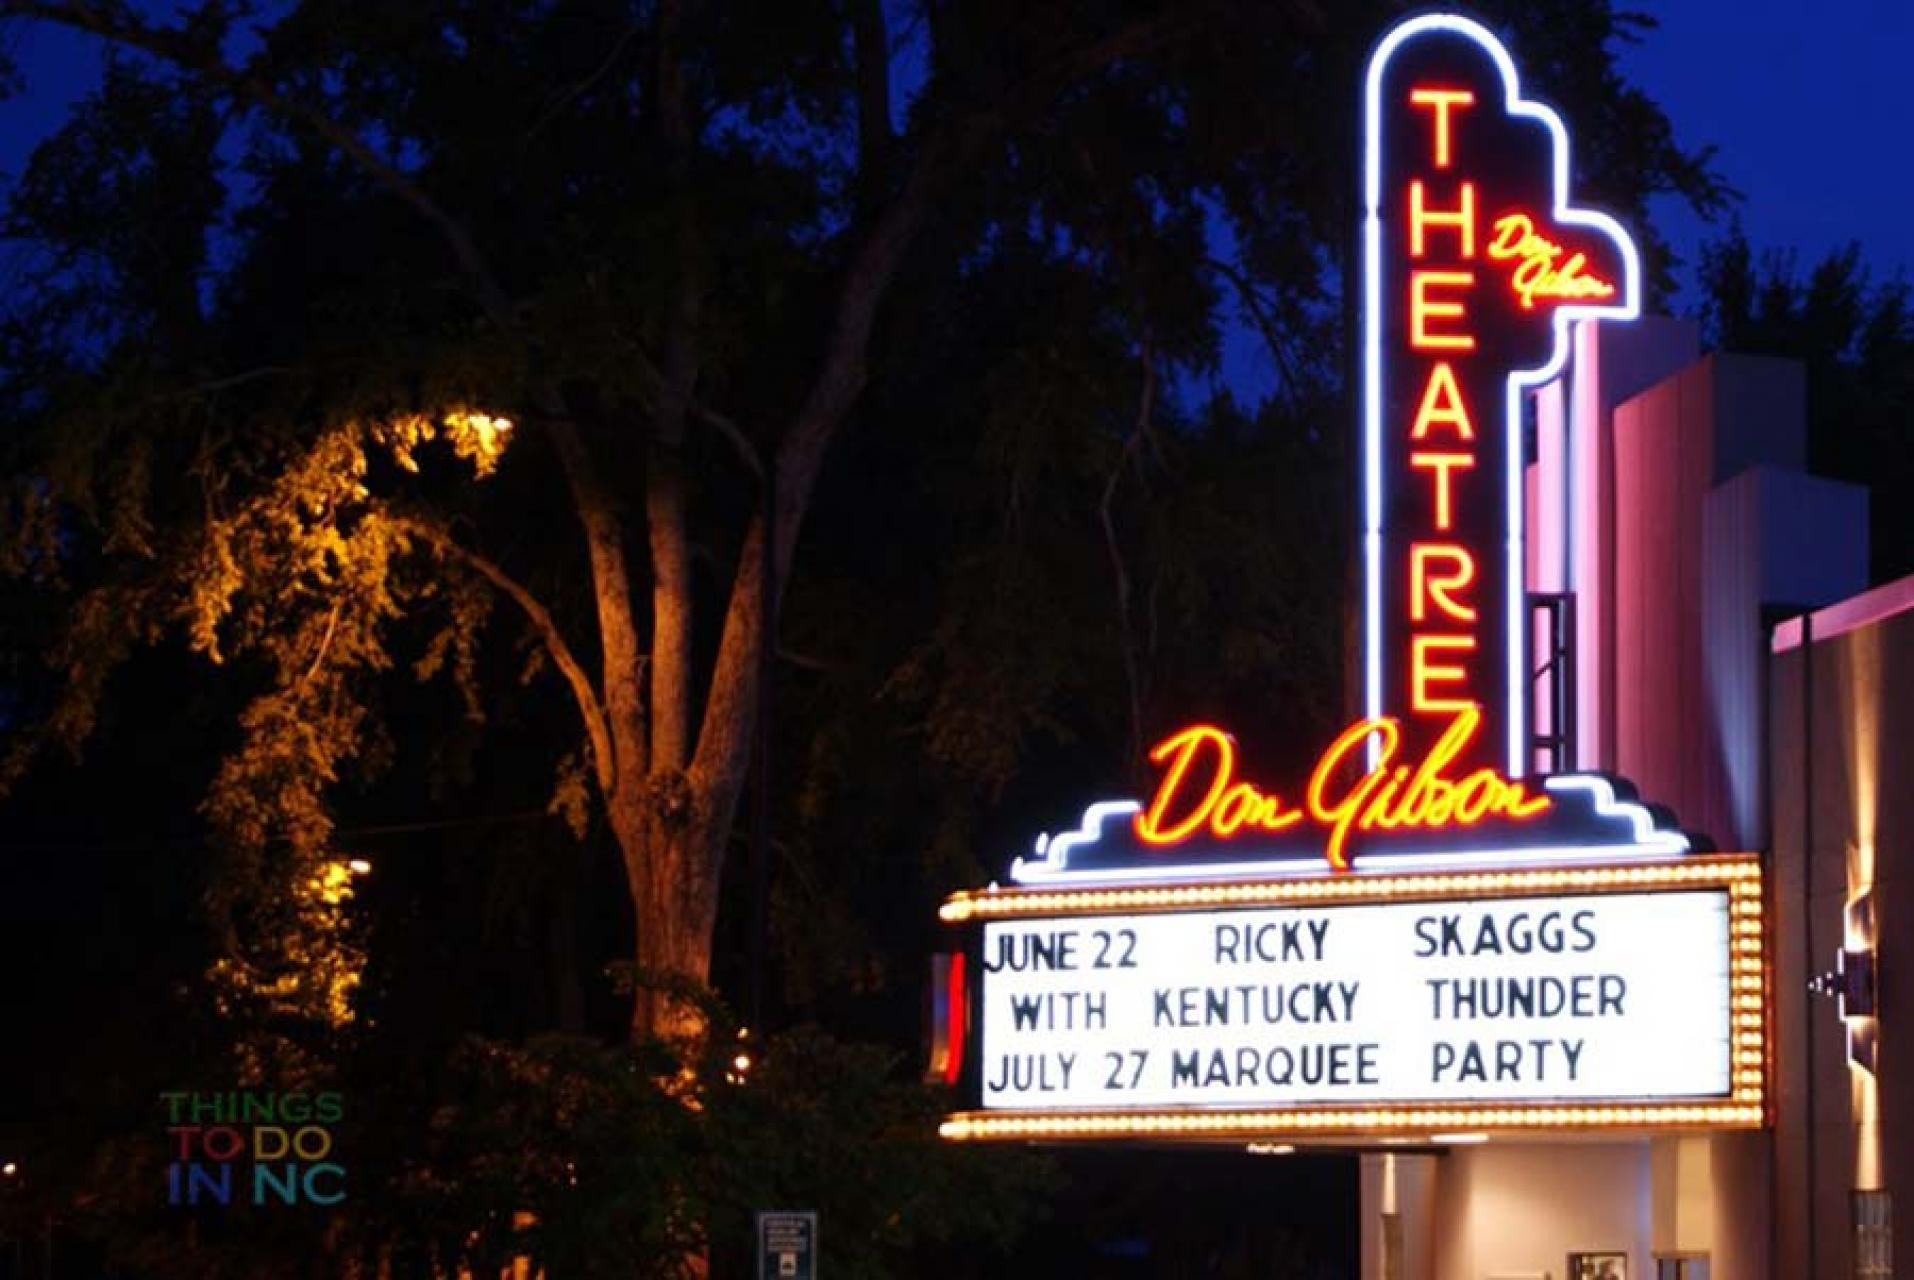 The marquee of the Don Gibson Theater in Shelby, NC